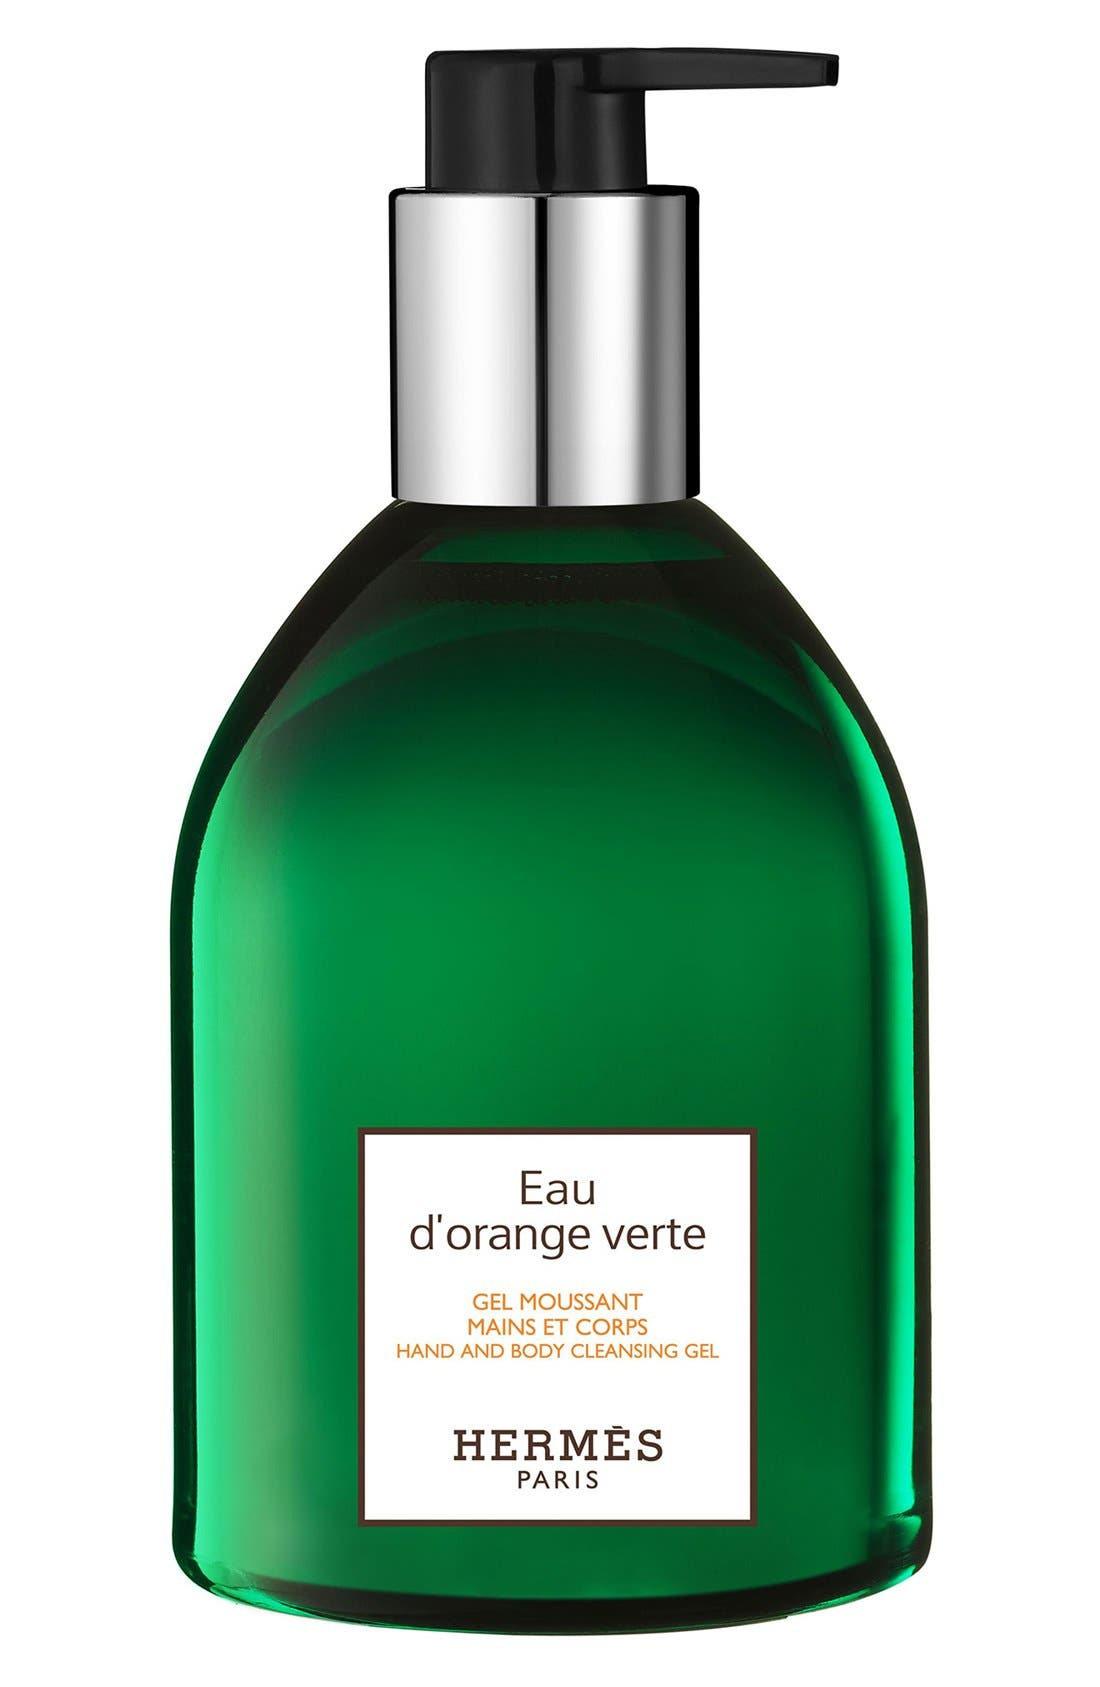 Hermès Eau d'Orange Verte - Hand and body cleansing gel